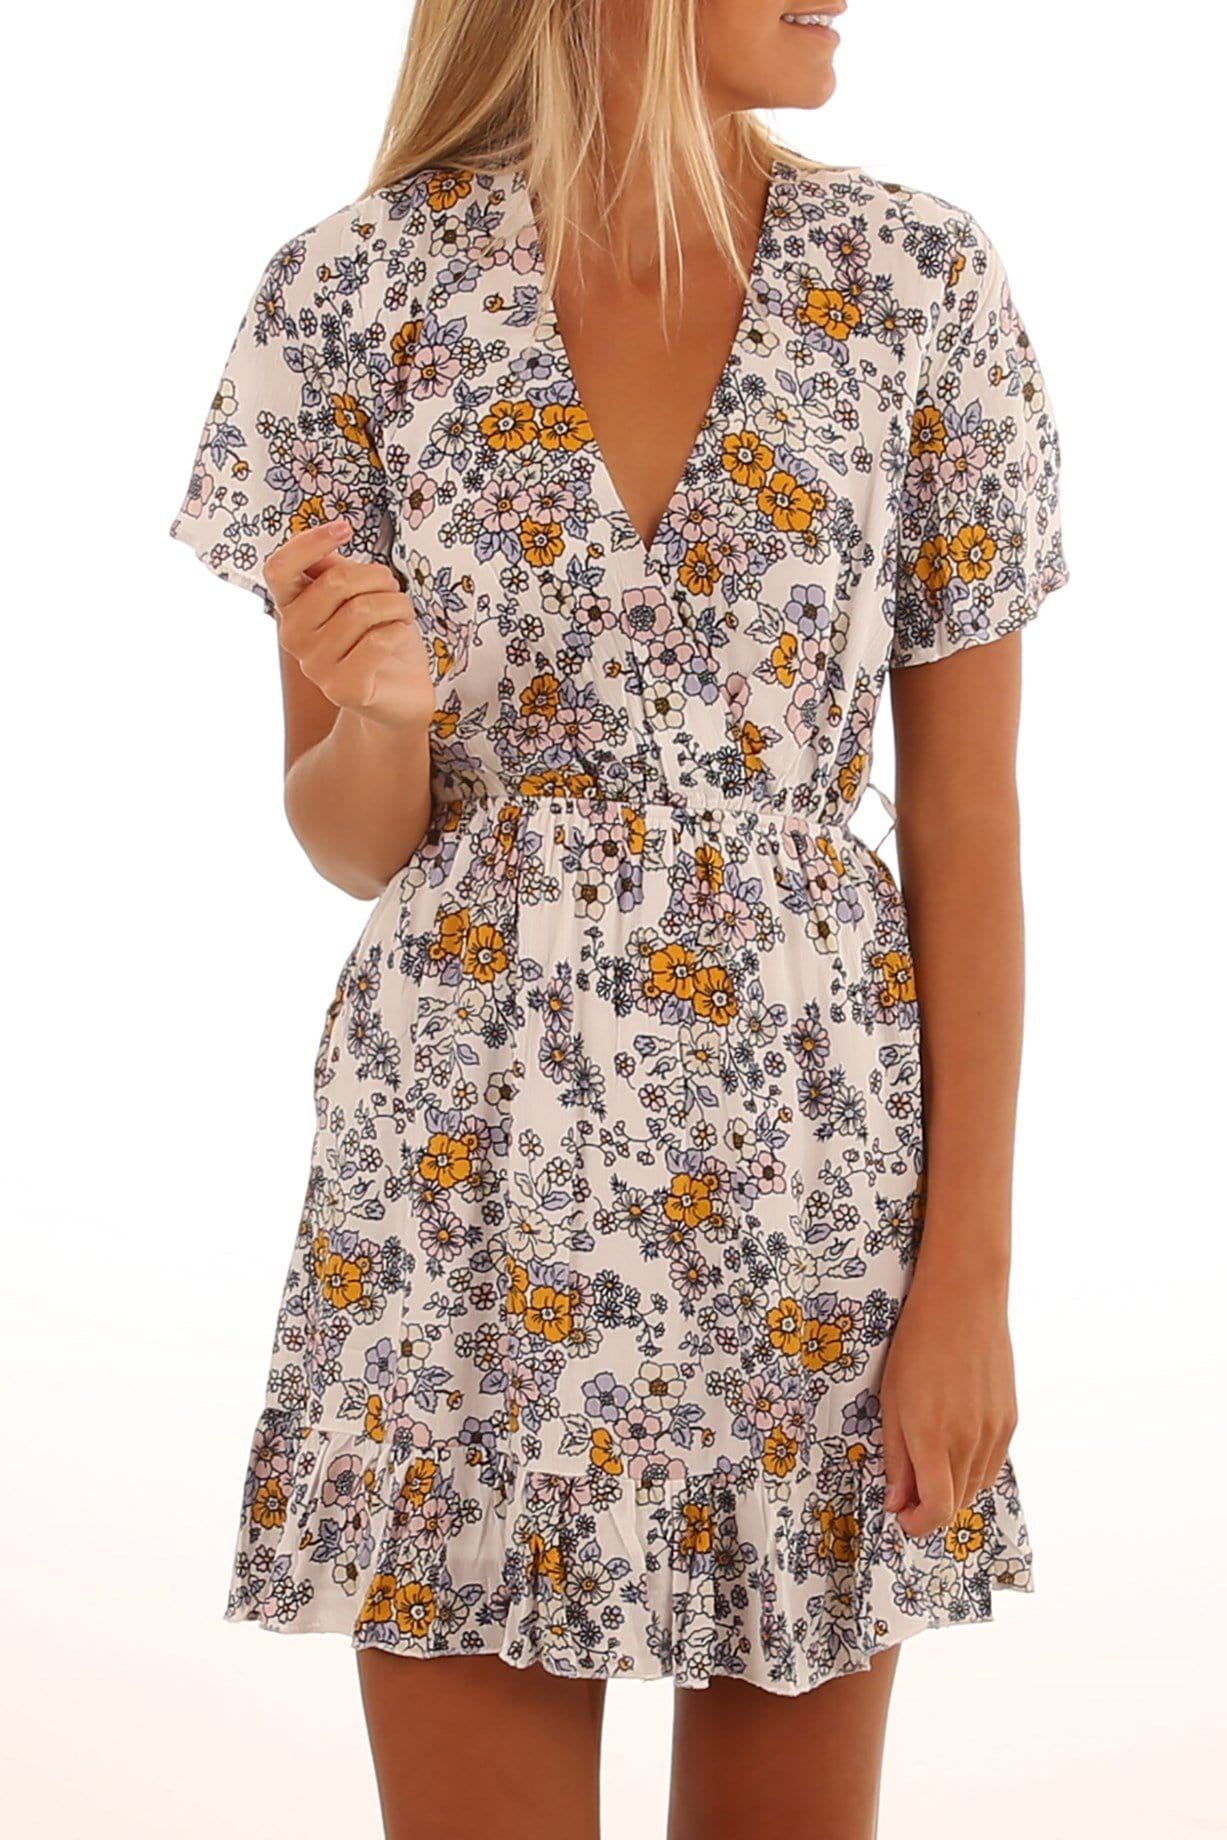 Antibes Chic Dress Multi Floral